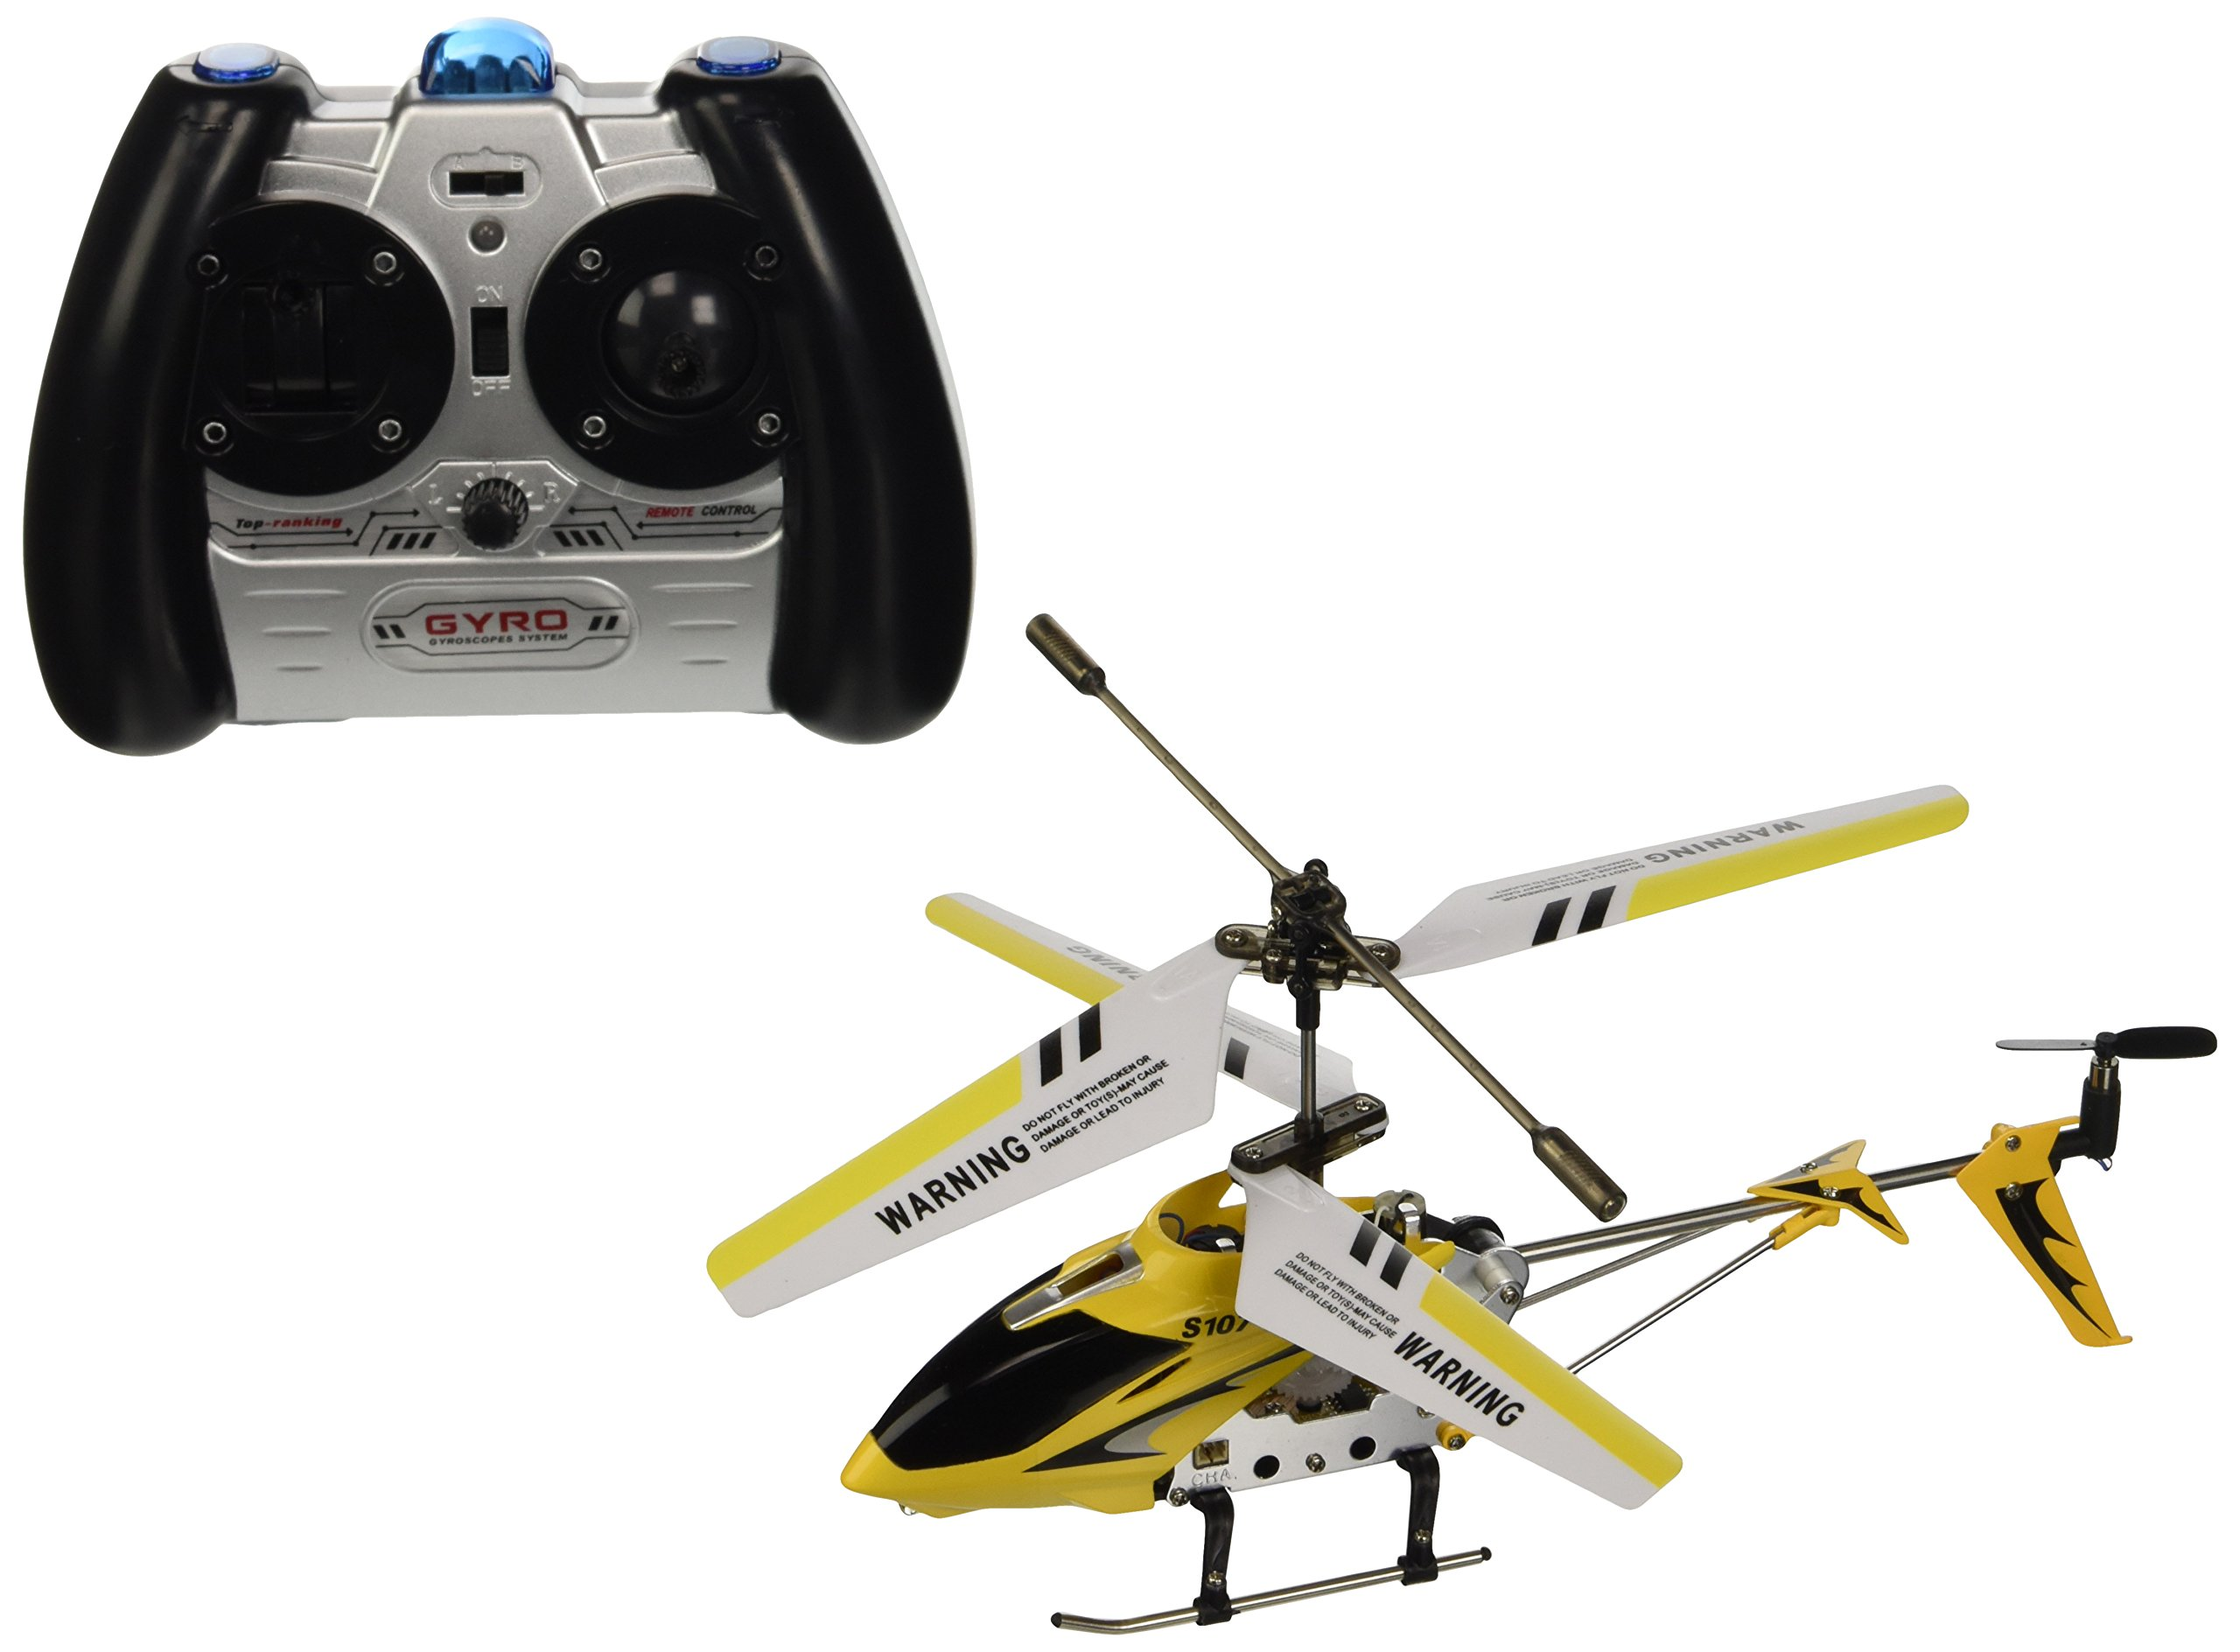 Syma 3 Channel S107 Mini Indoor Co-Axial Metal Body Frame & Built-in Gyroscope Helicopter (Color May Vary)